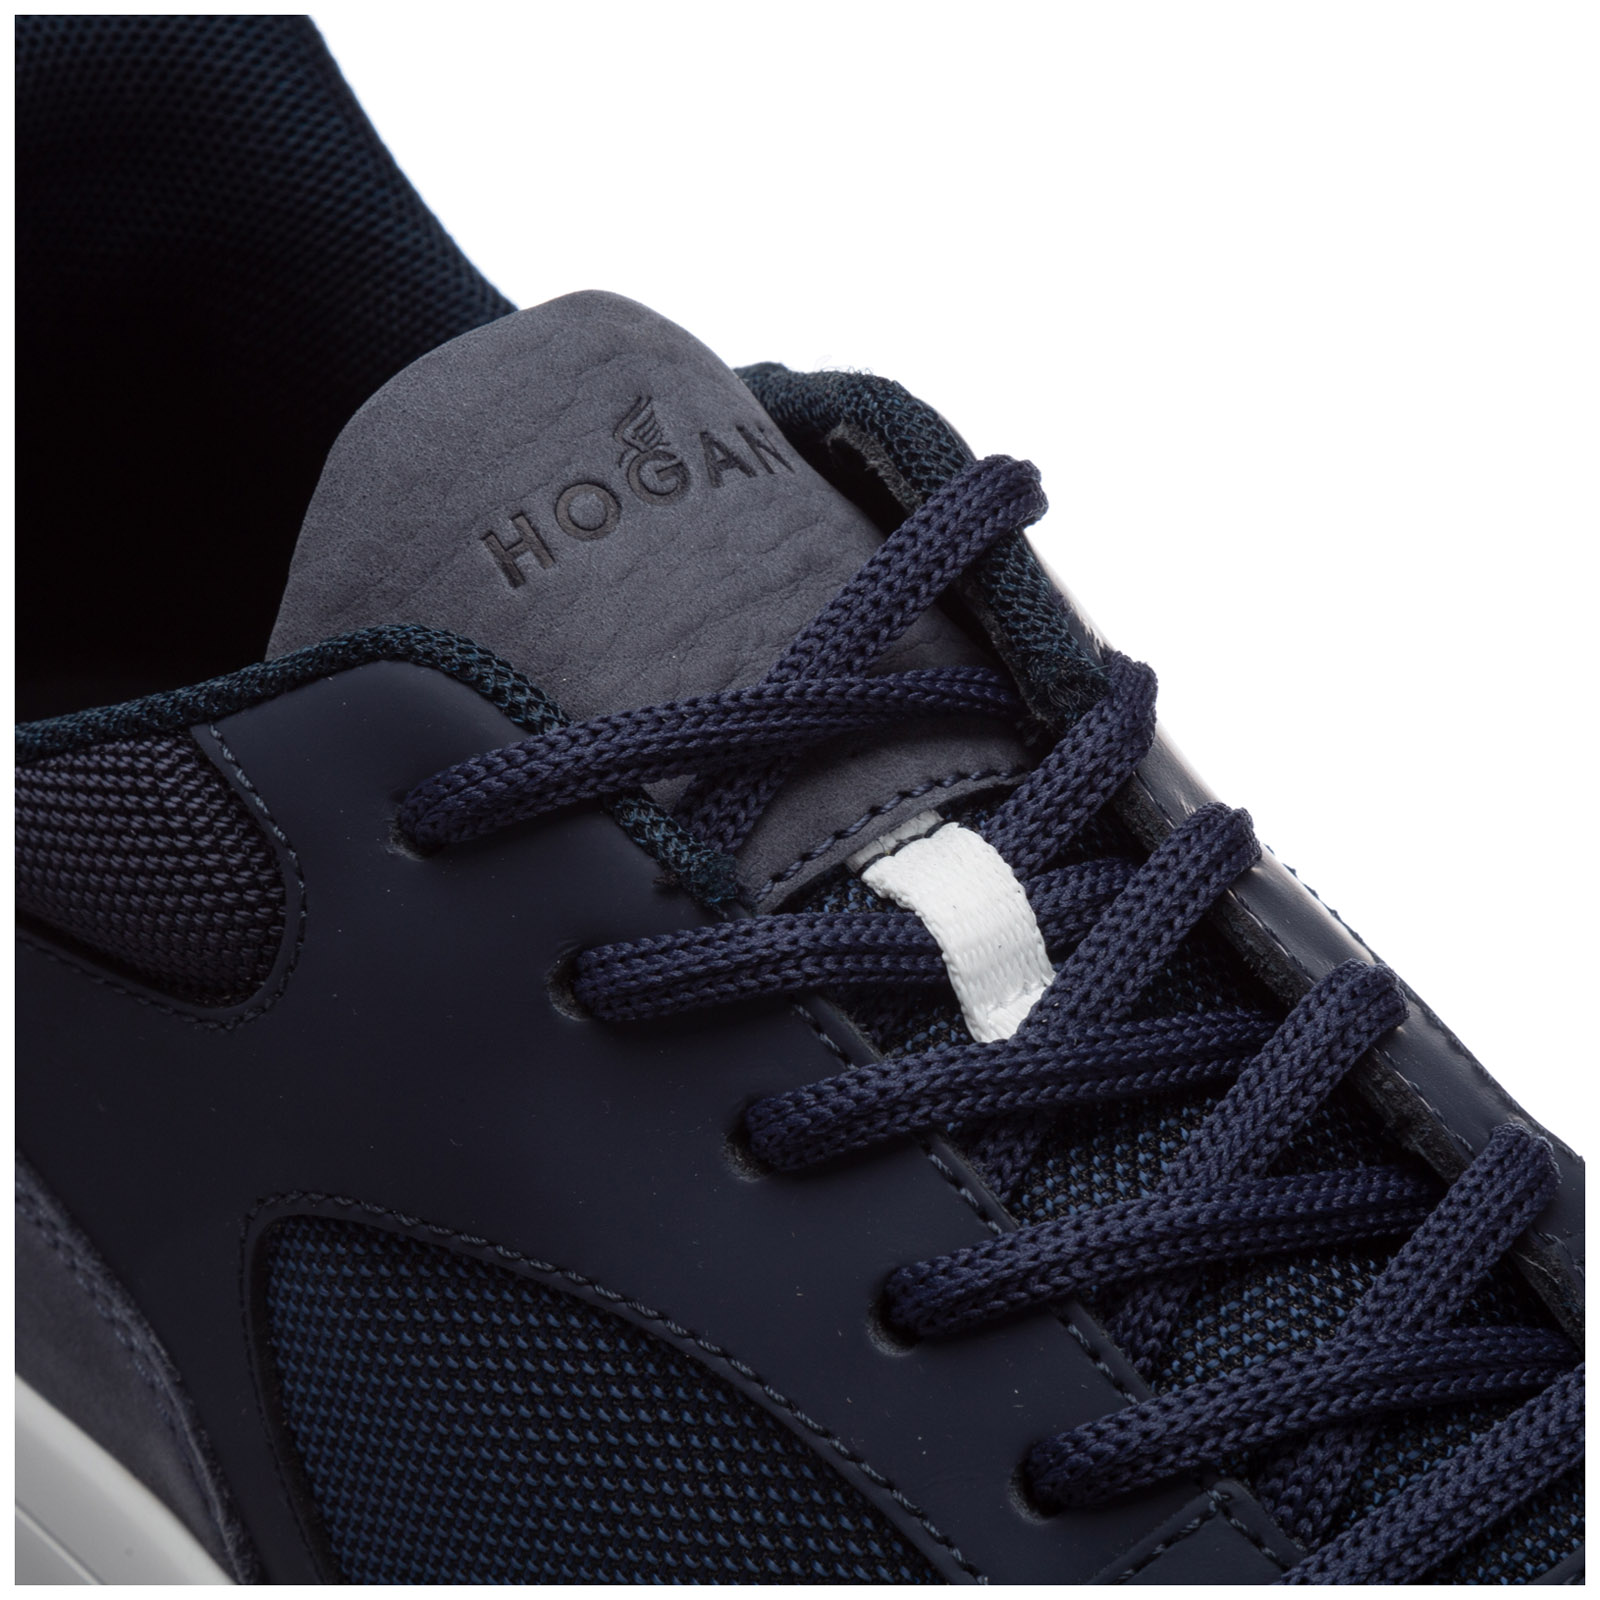 Men's shoes leather trainers sneakers hyperlight